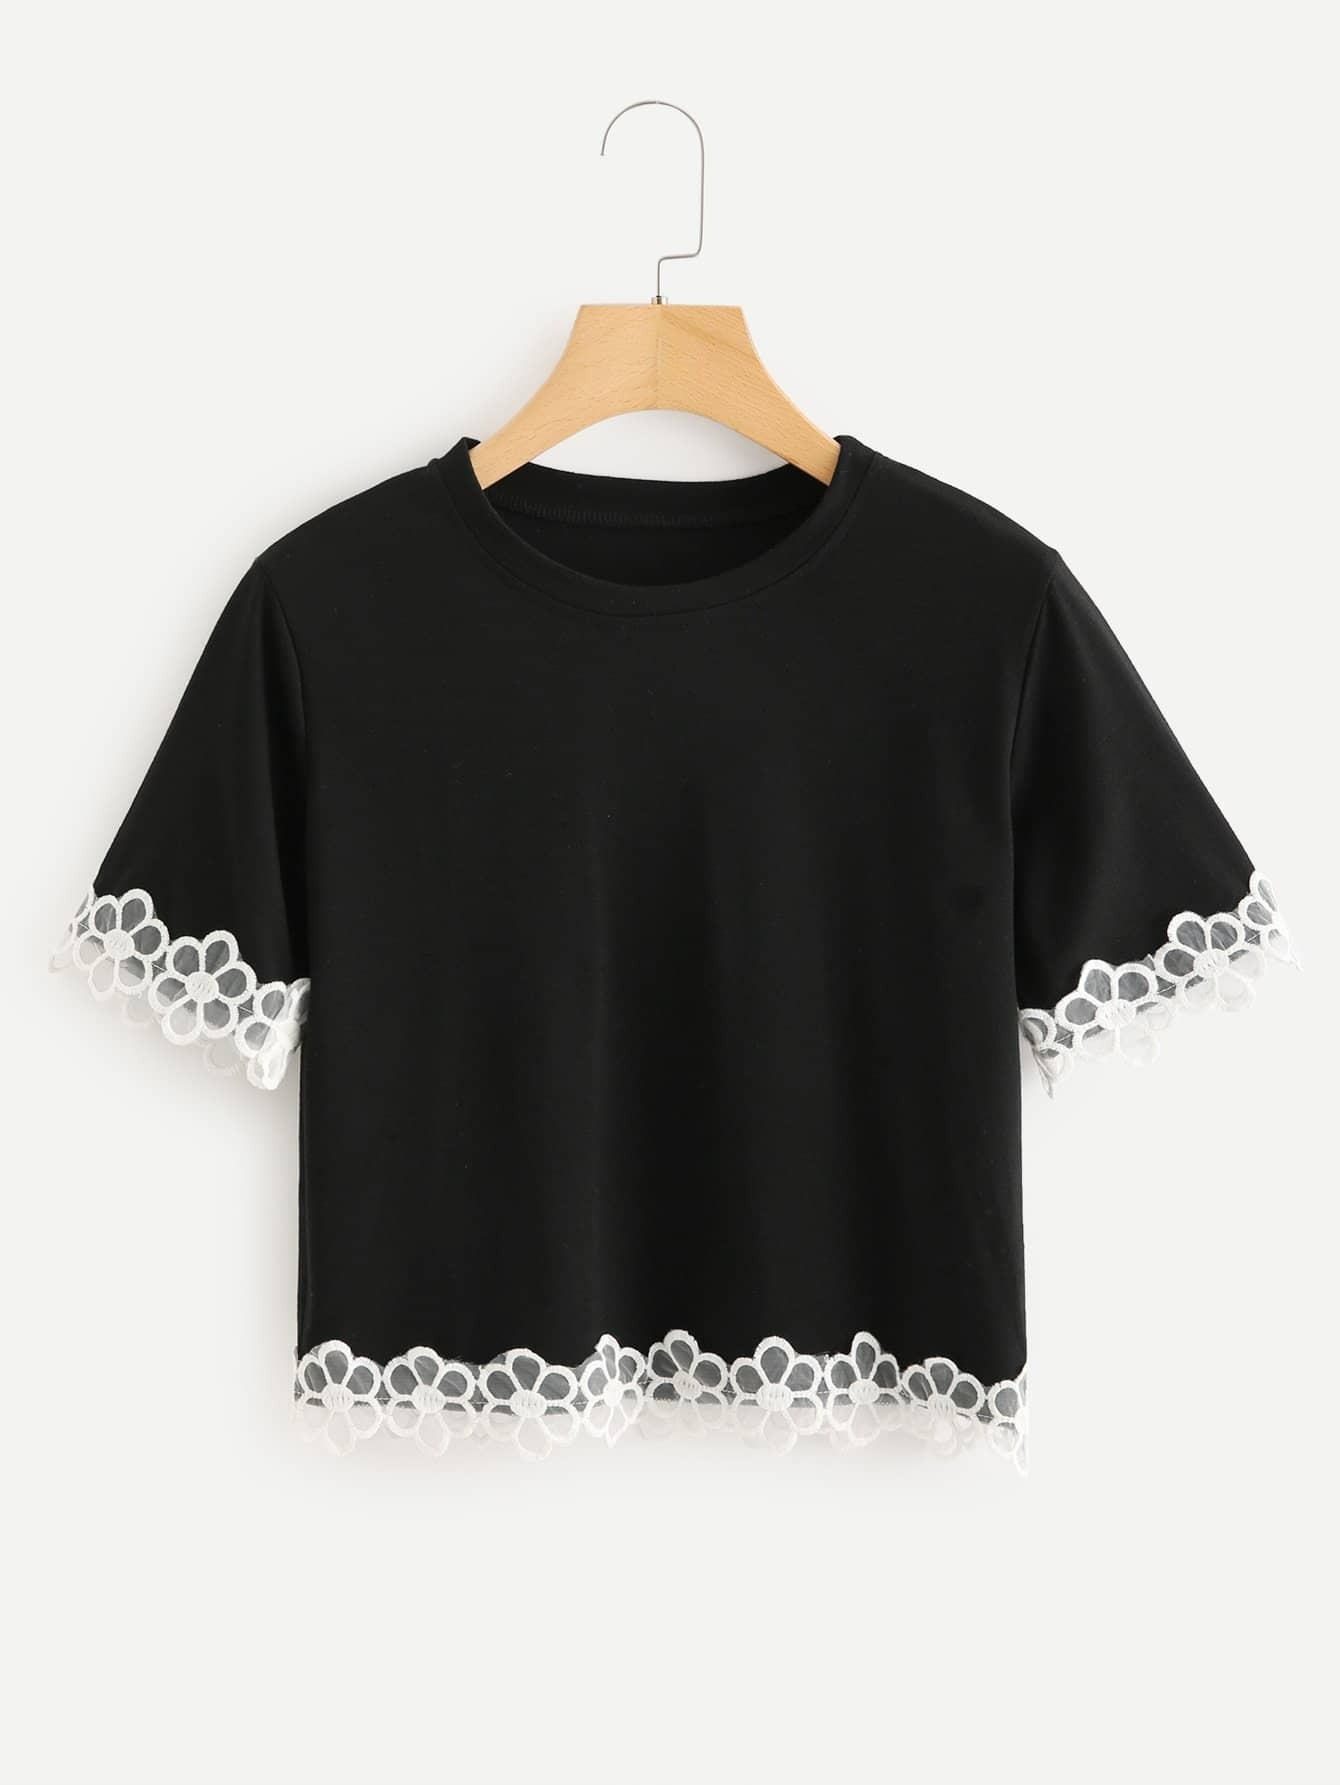 Embroidered Flower Mesh Trim Tee embroidered flower applique mesh sweetheart tee